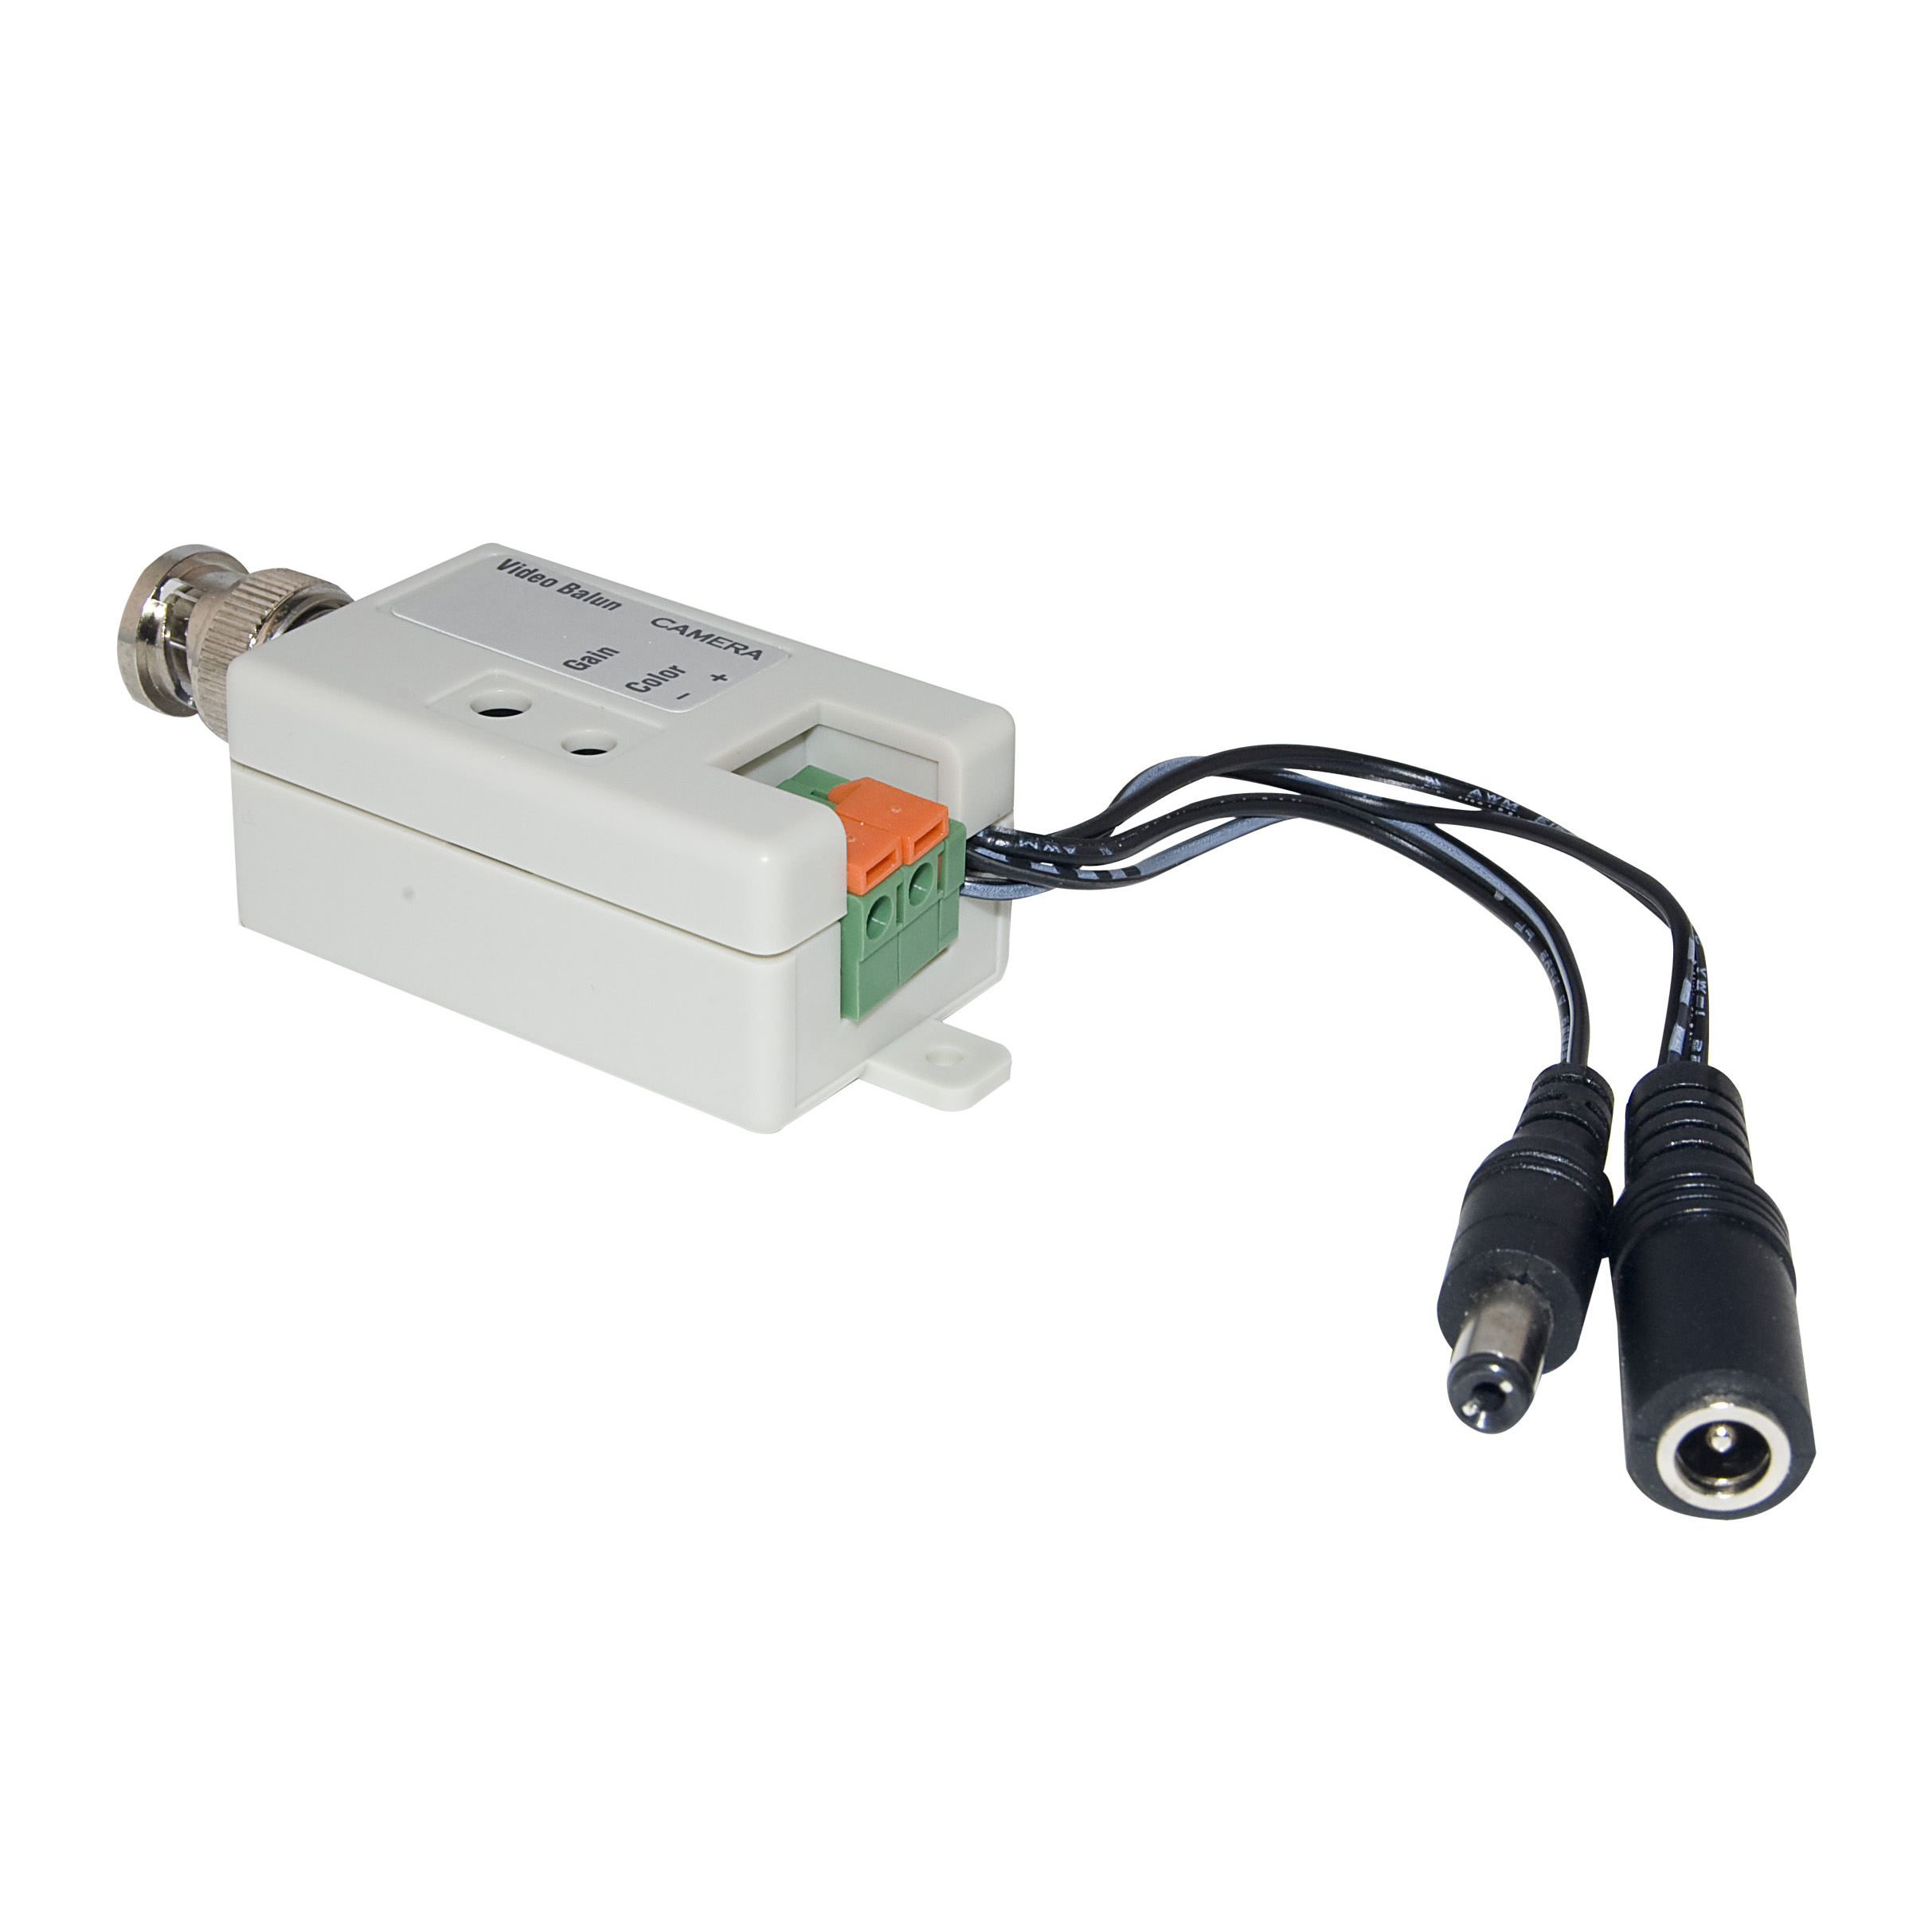 10b1 01220 active video balun for camera side male bnc connector bnc connector wiring diagram at webbmarketing.co